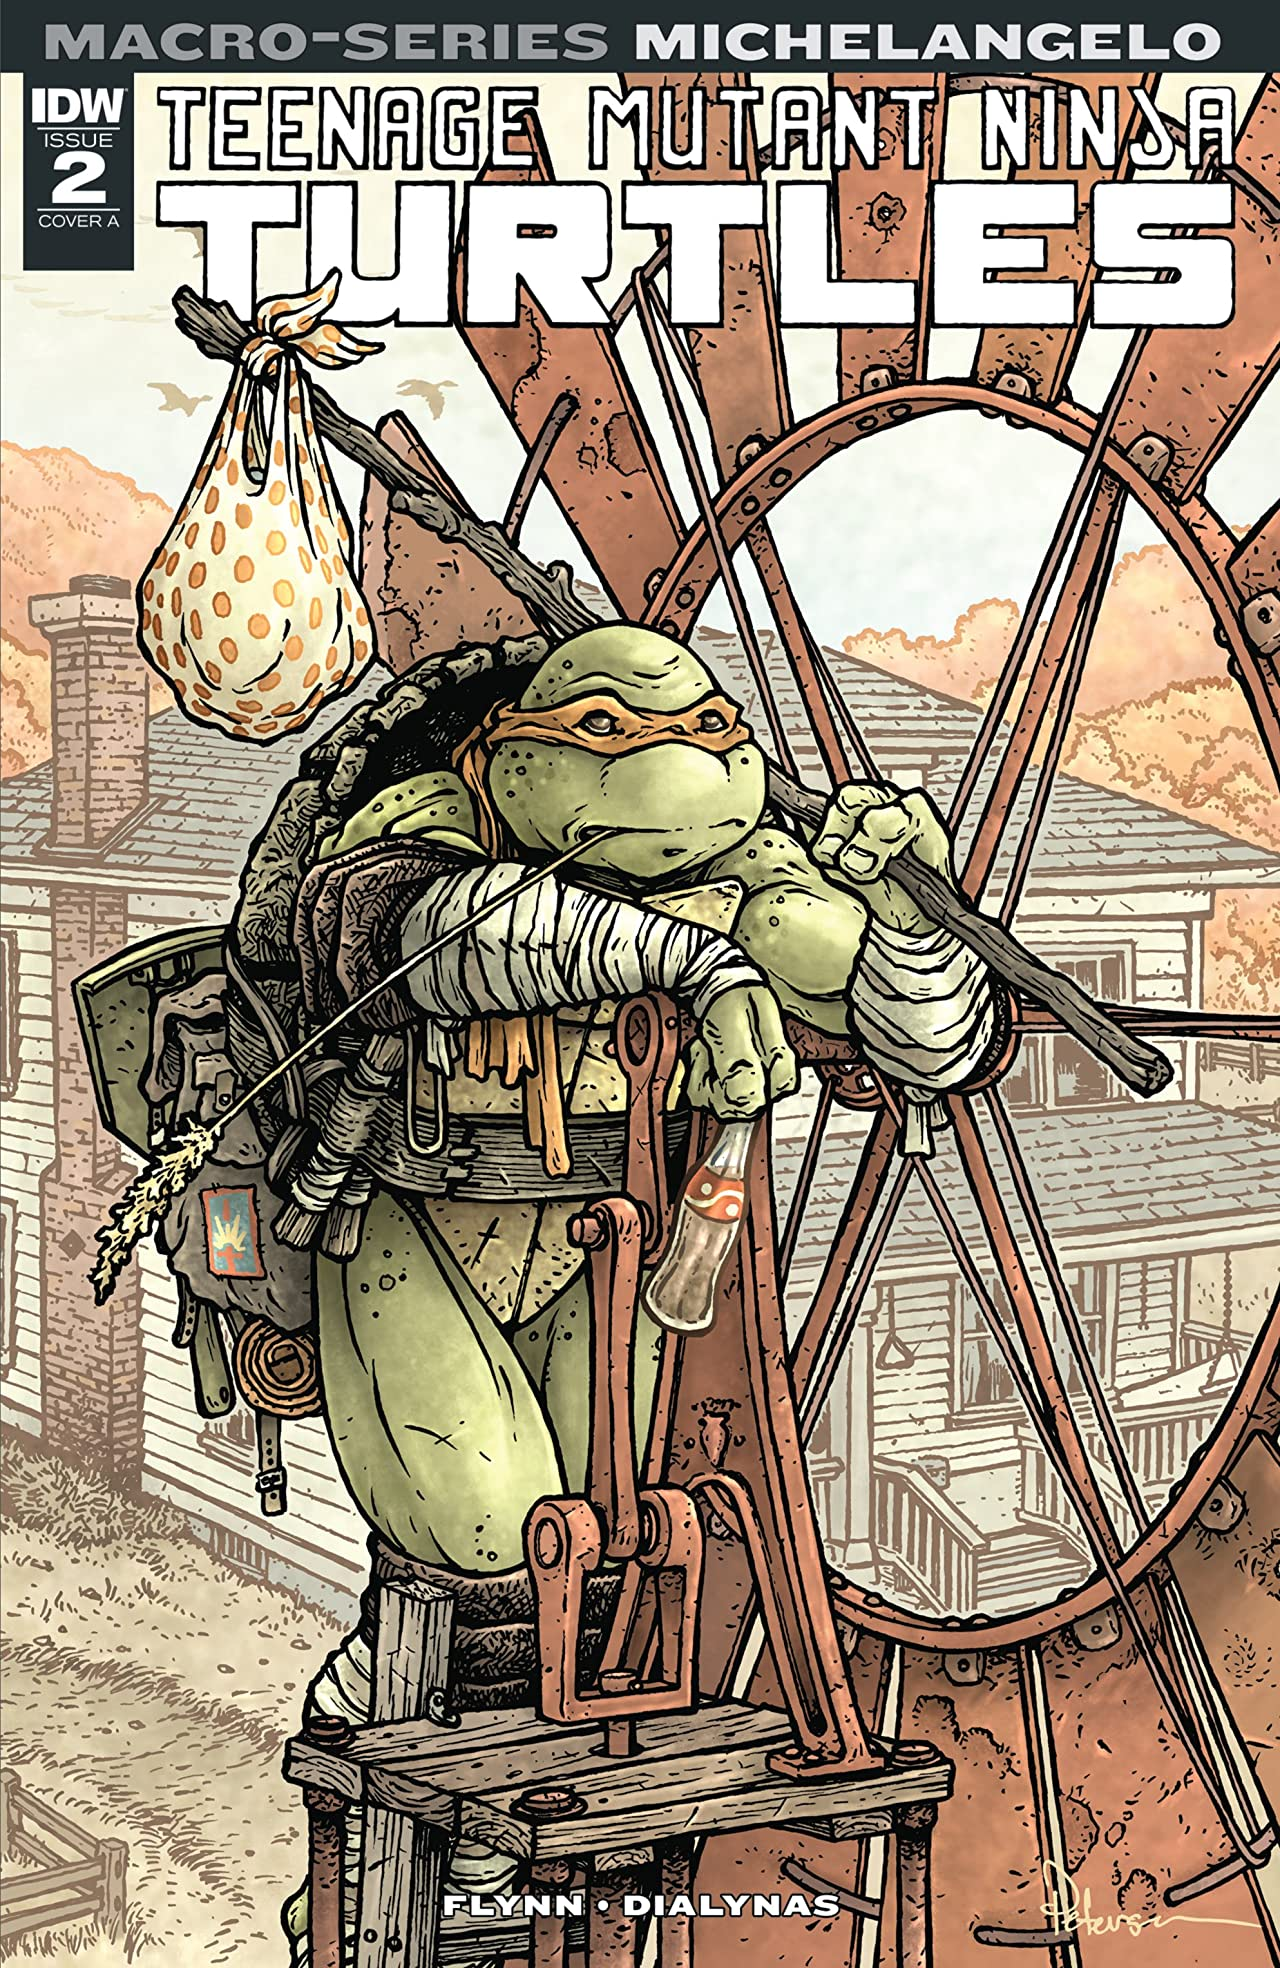 Teenage Mutant Ninja Turtles: Macro-Series: Michelangelo